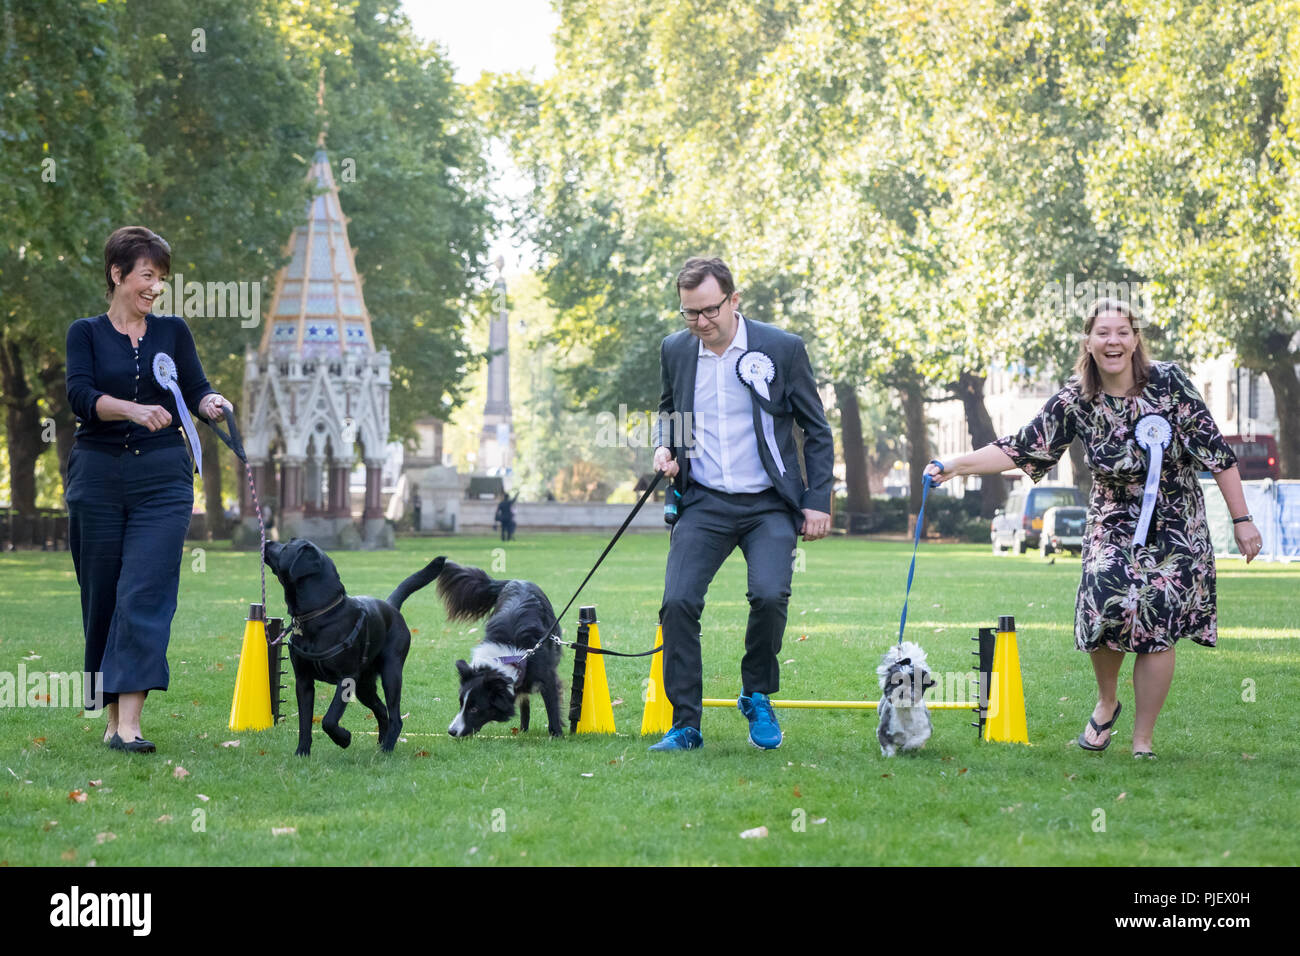 London, UK. 6th September, 2018. 26th Annual Westminster Dog of the Year. Credit: Guy Corbishley/Alamy Live News Stock Photo